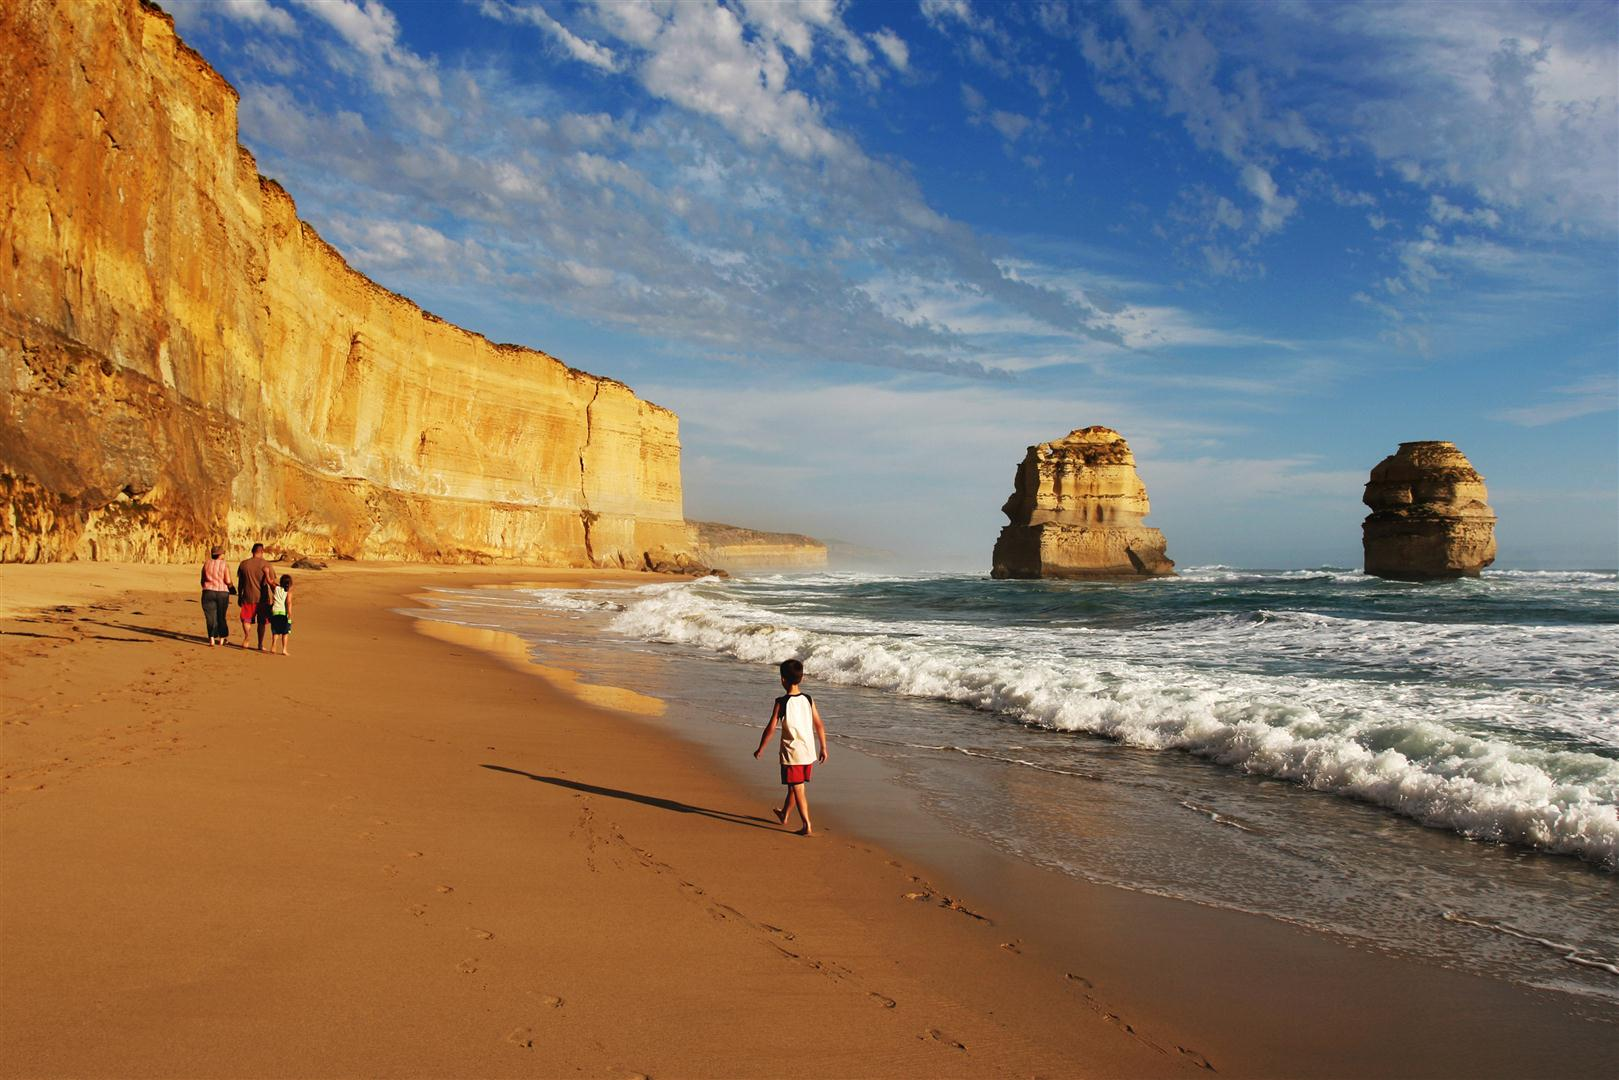 Copy of Surf Beach along Great Ocean Road